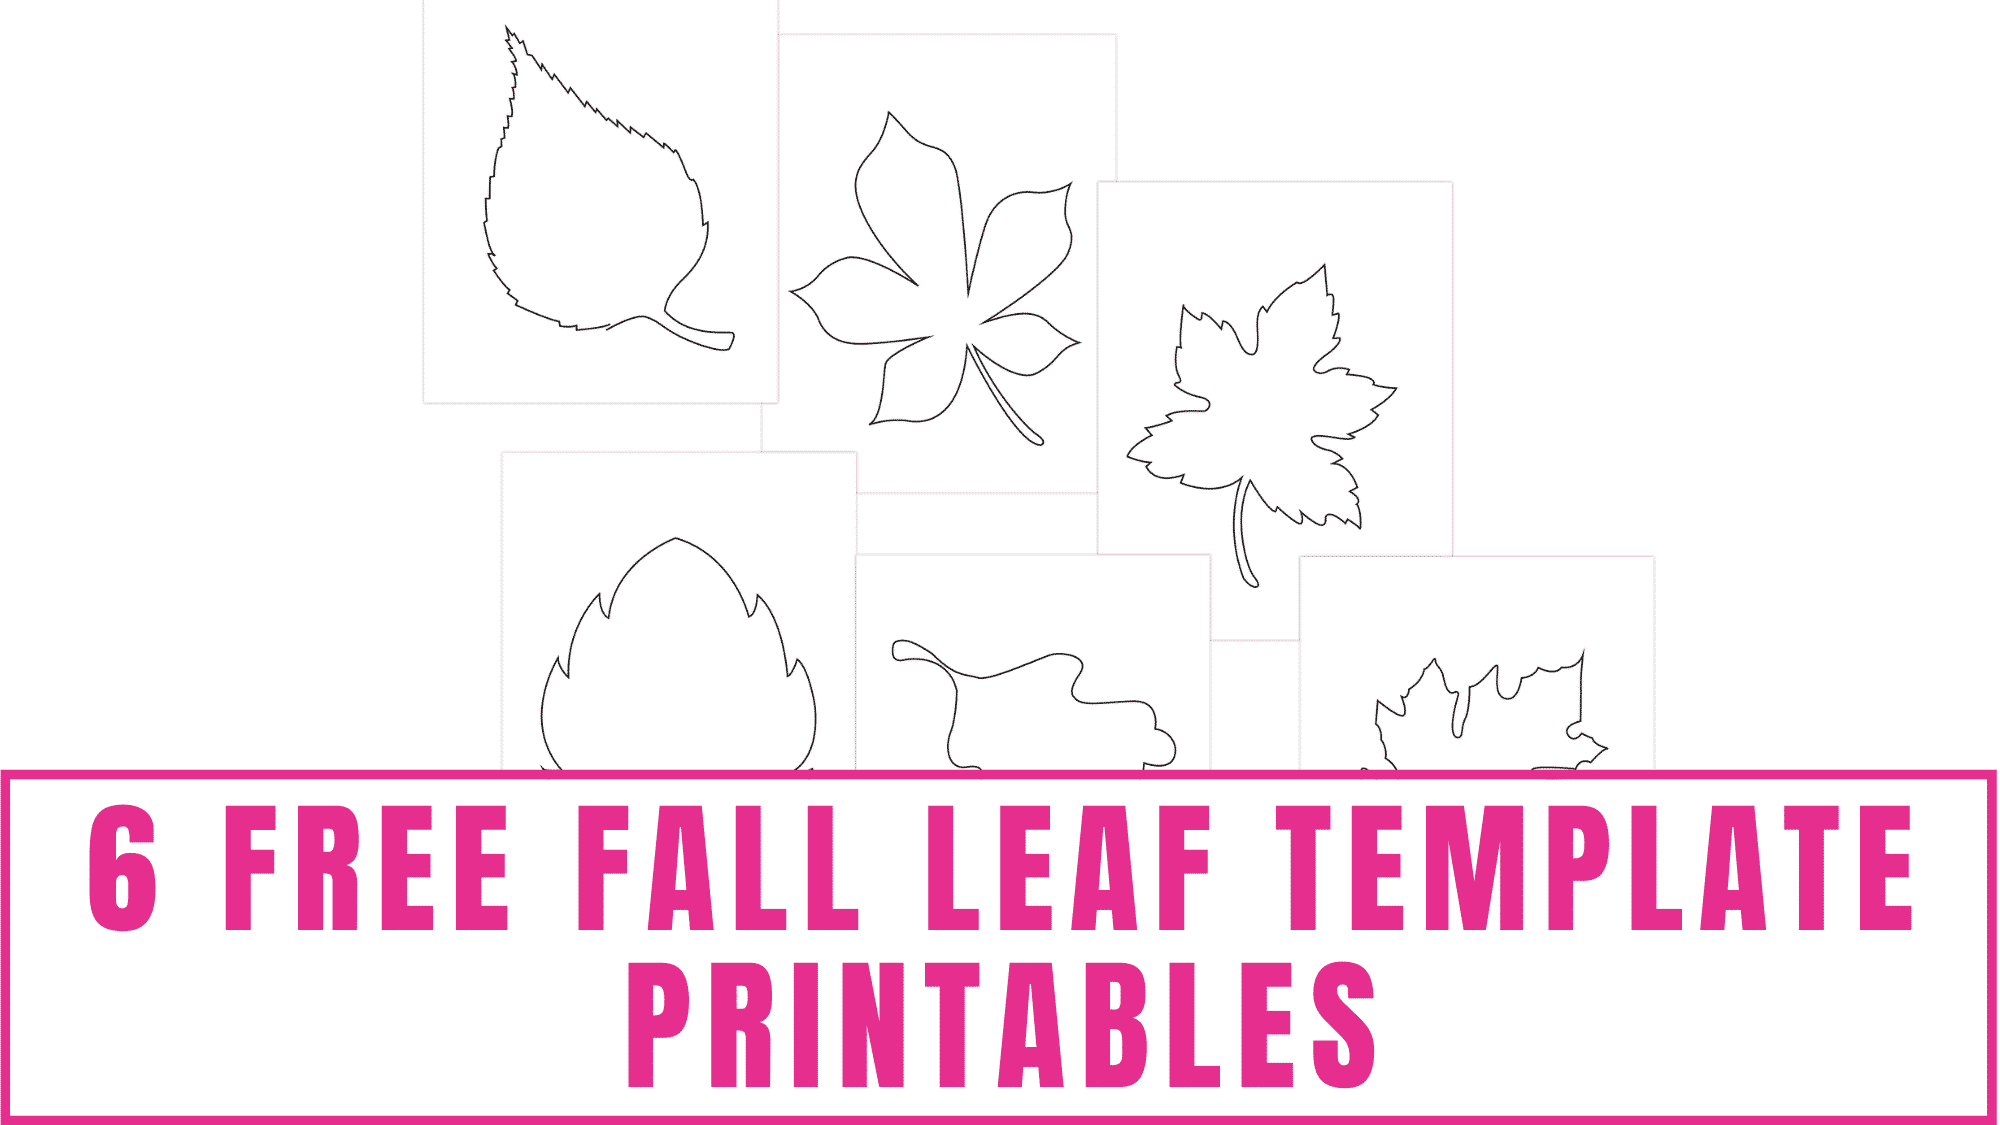 These free fall leaf template printables can be used in fall crafts for kids or they make great free printable fall coloring pages for adults and kids.